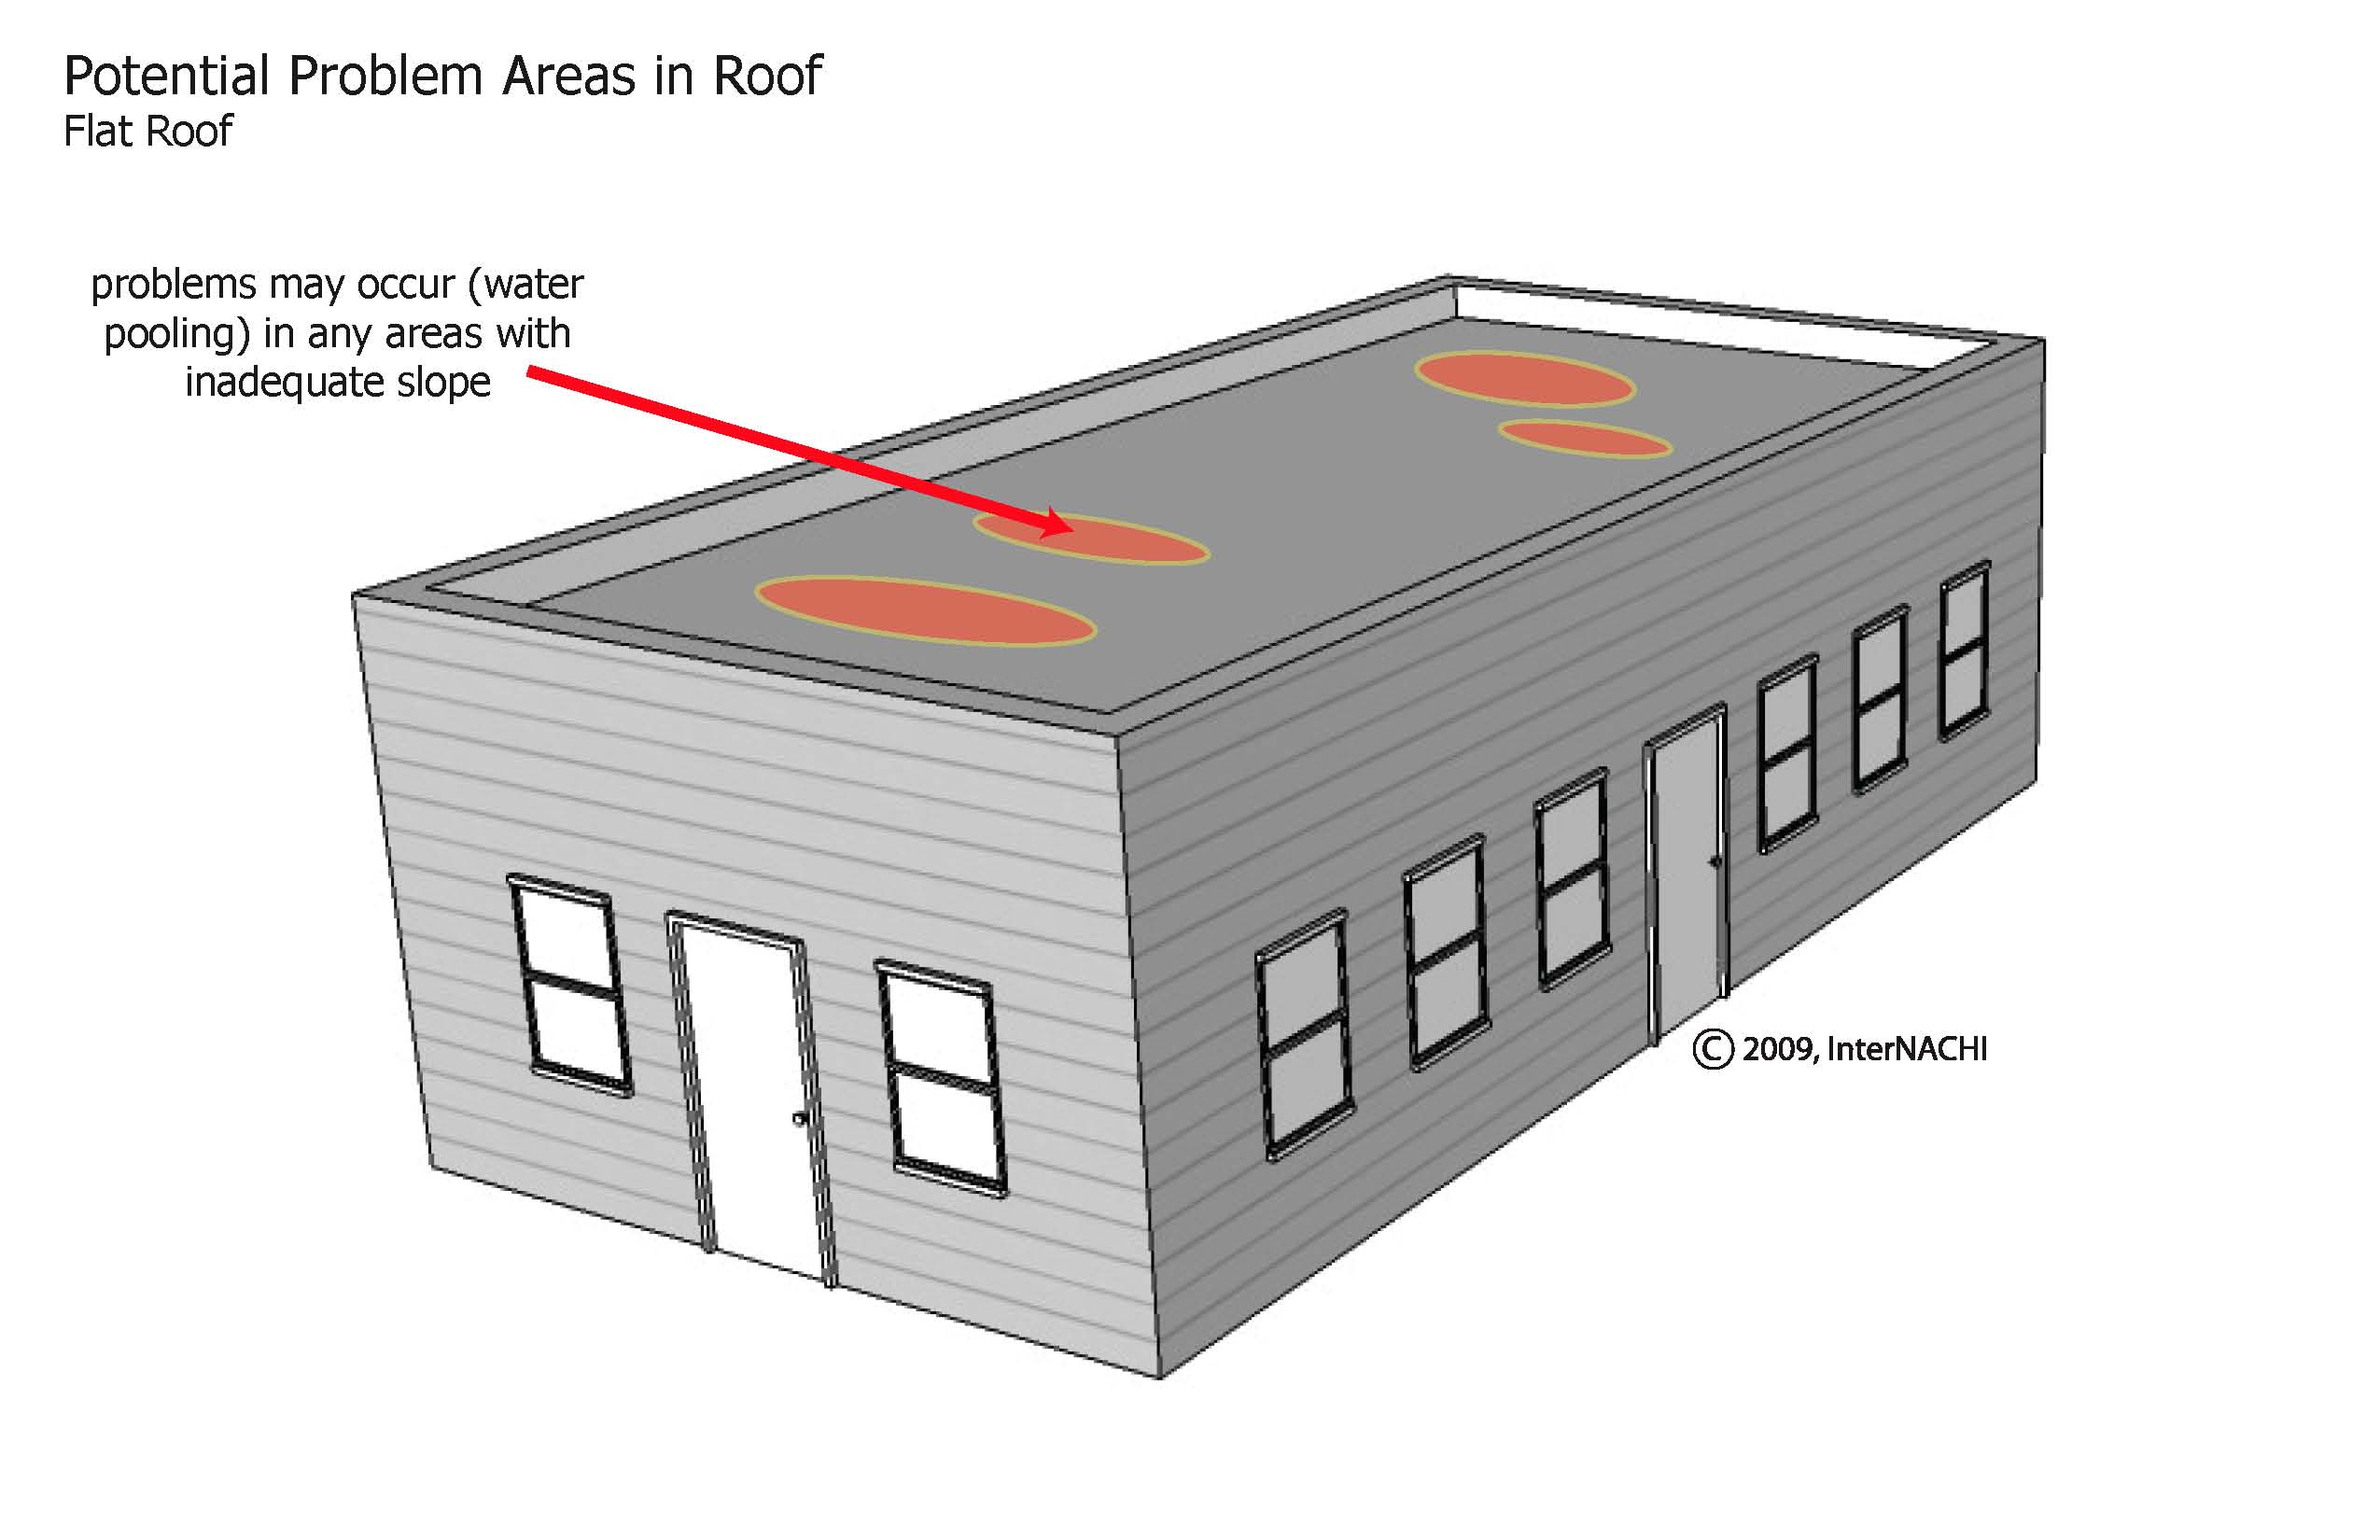 Flat roof problem areas.